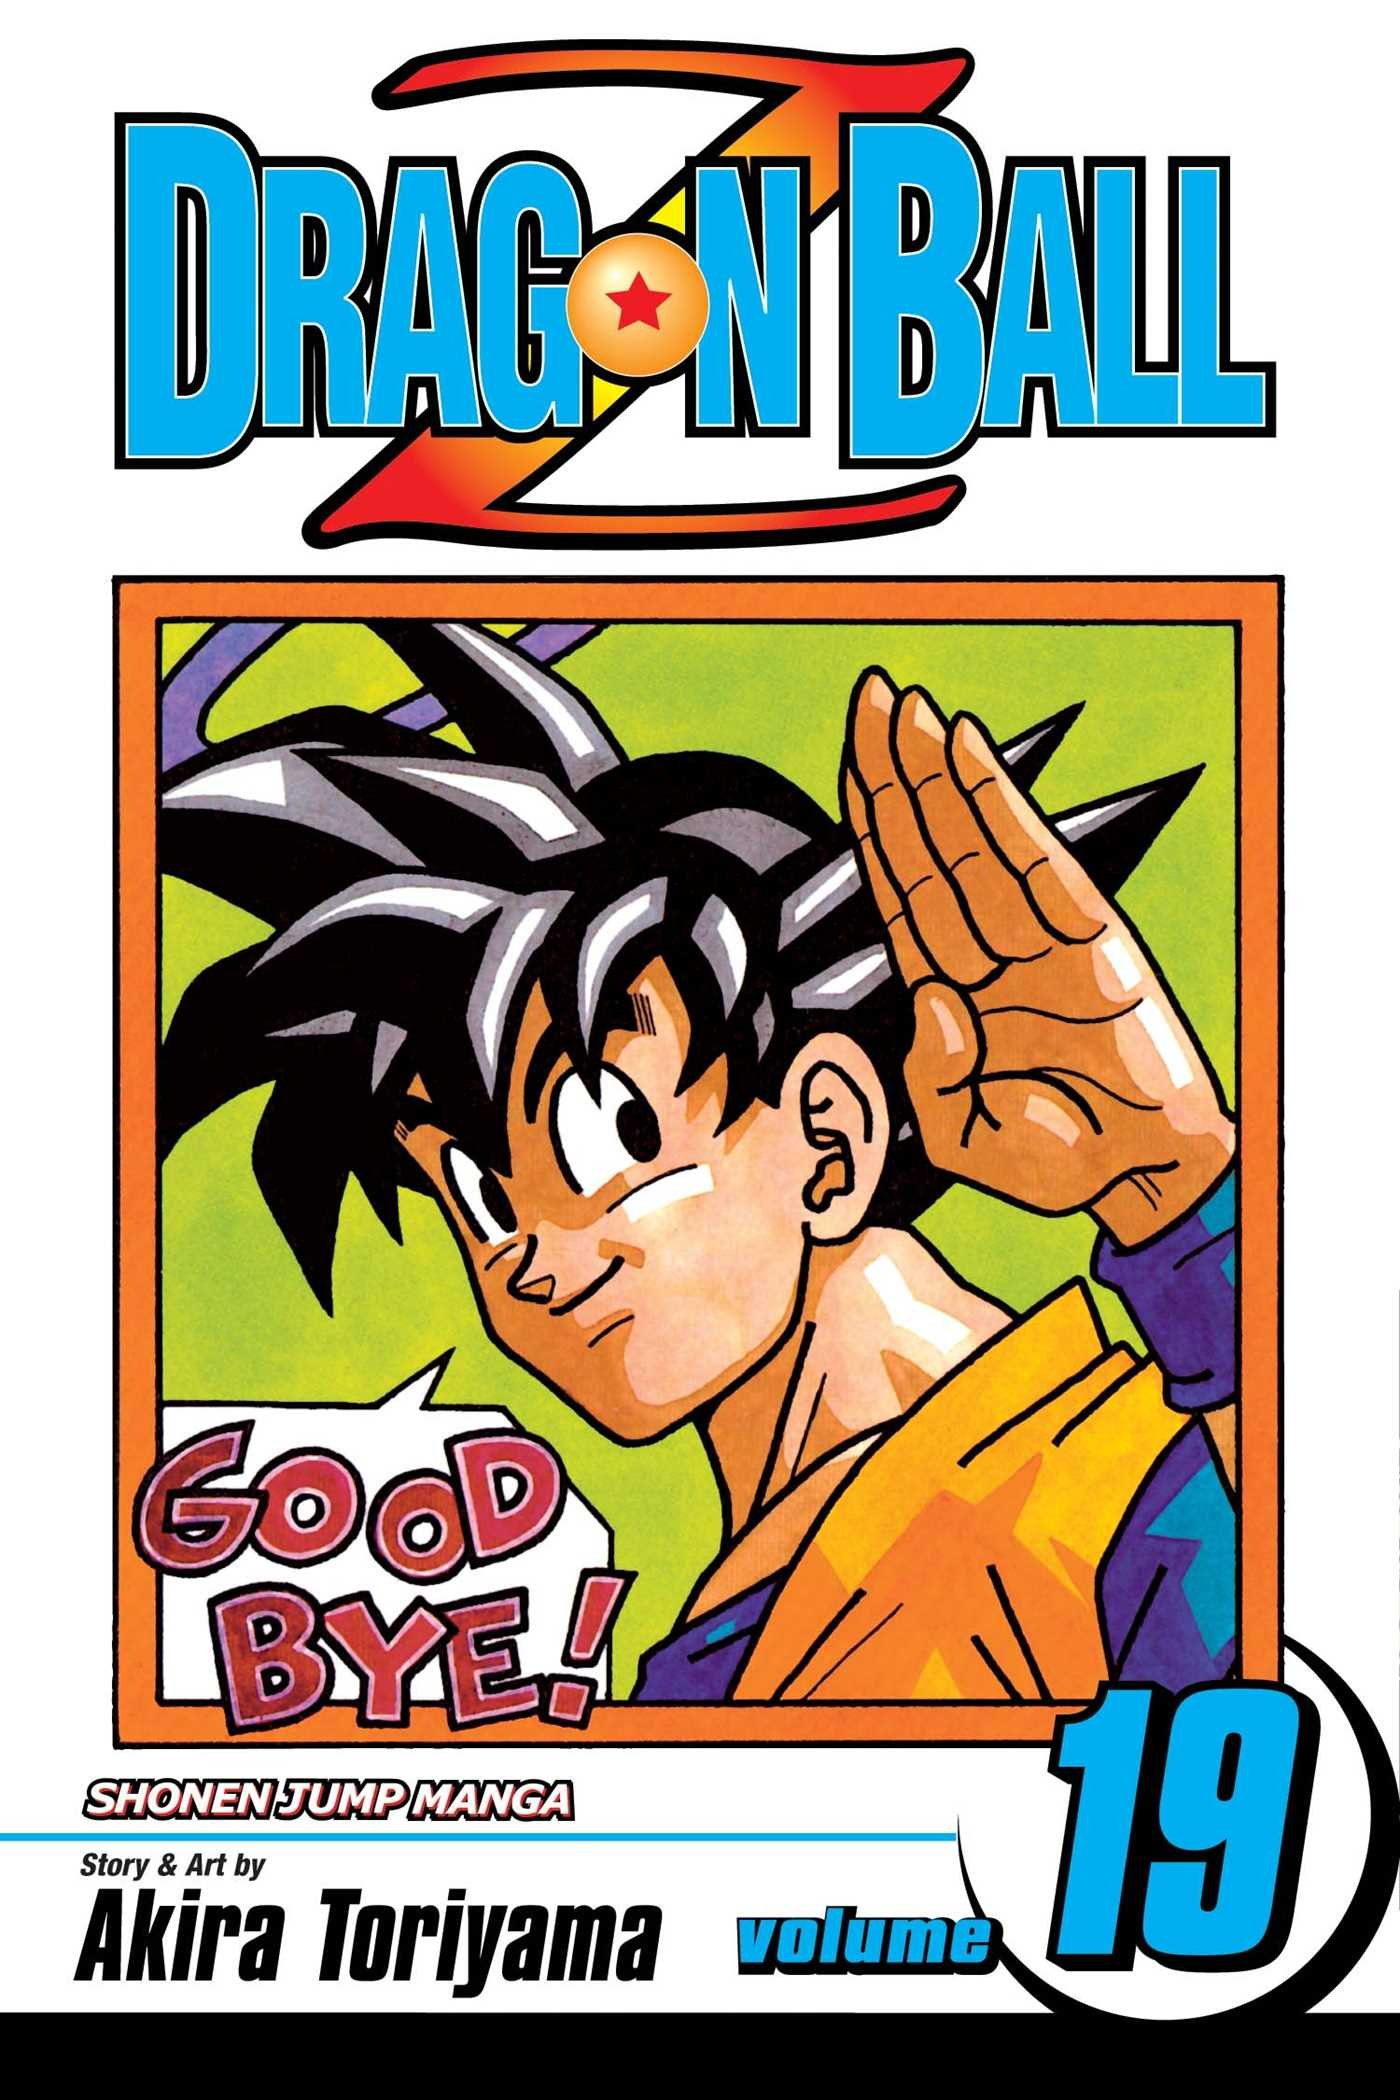 Amazon Com Dragon Ball Z Vol 19 19 9781591167518 Toriyama Akira Toriyama Akira Books